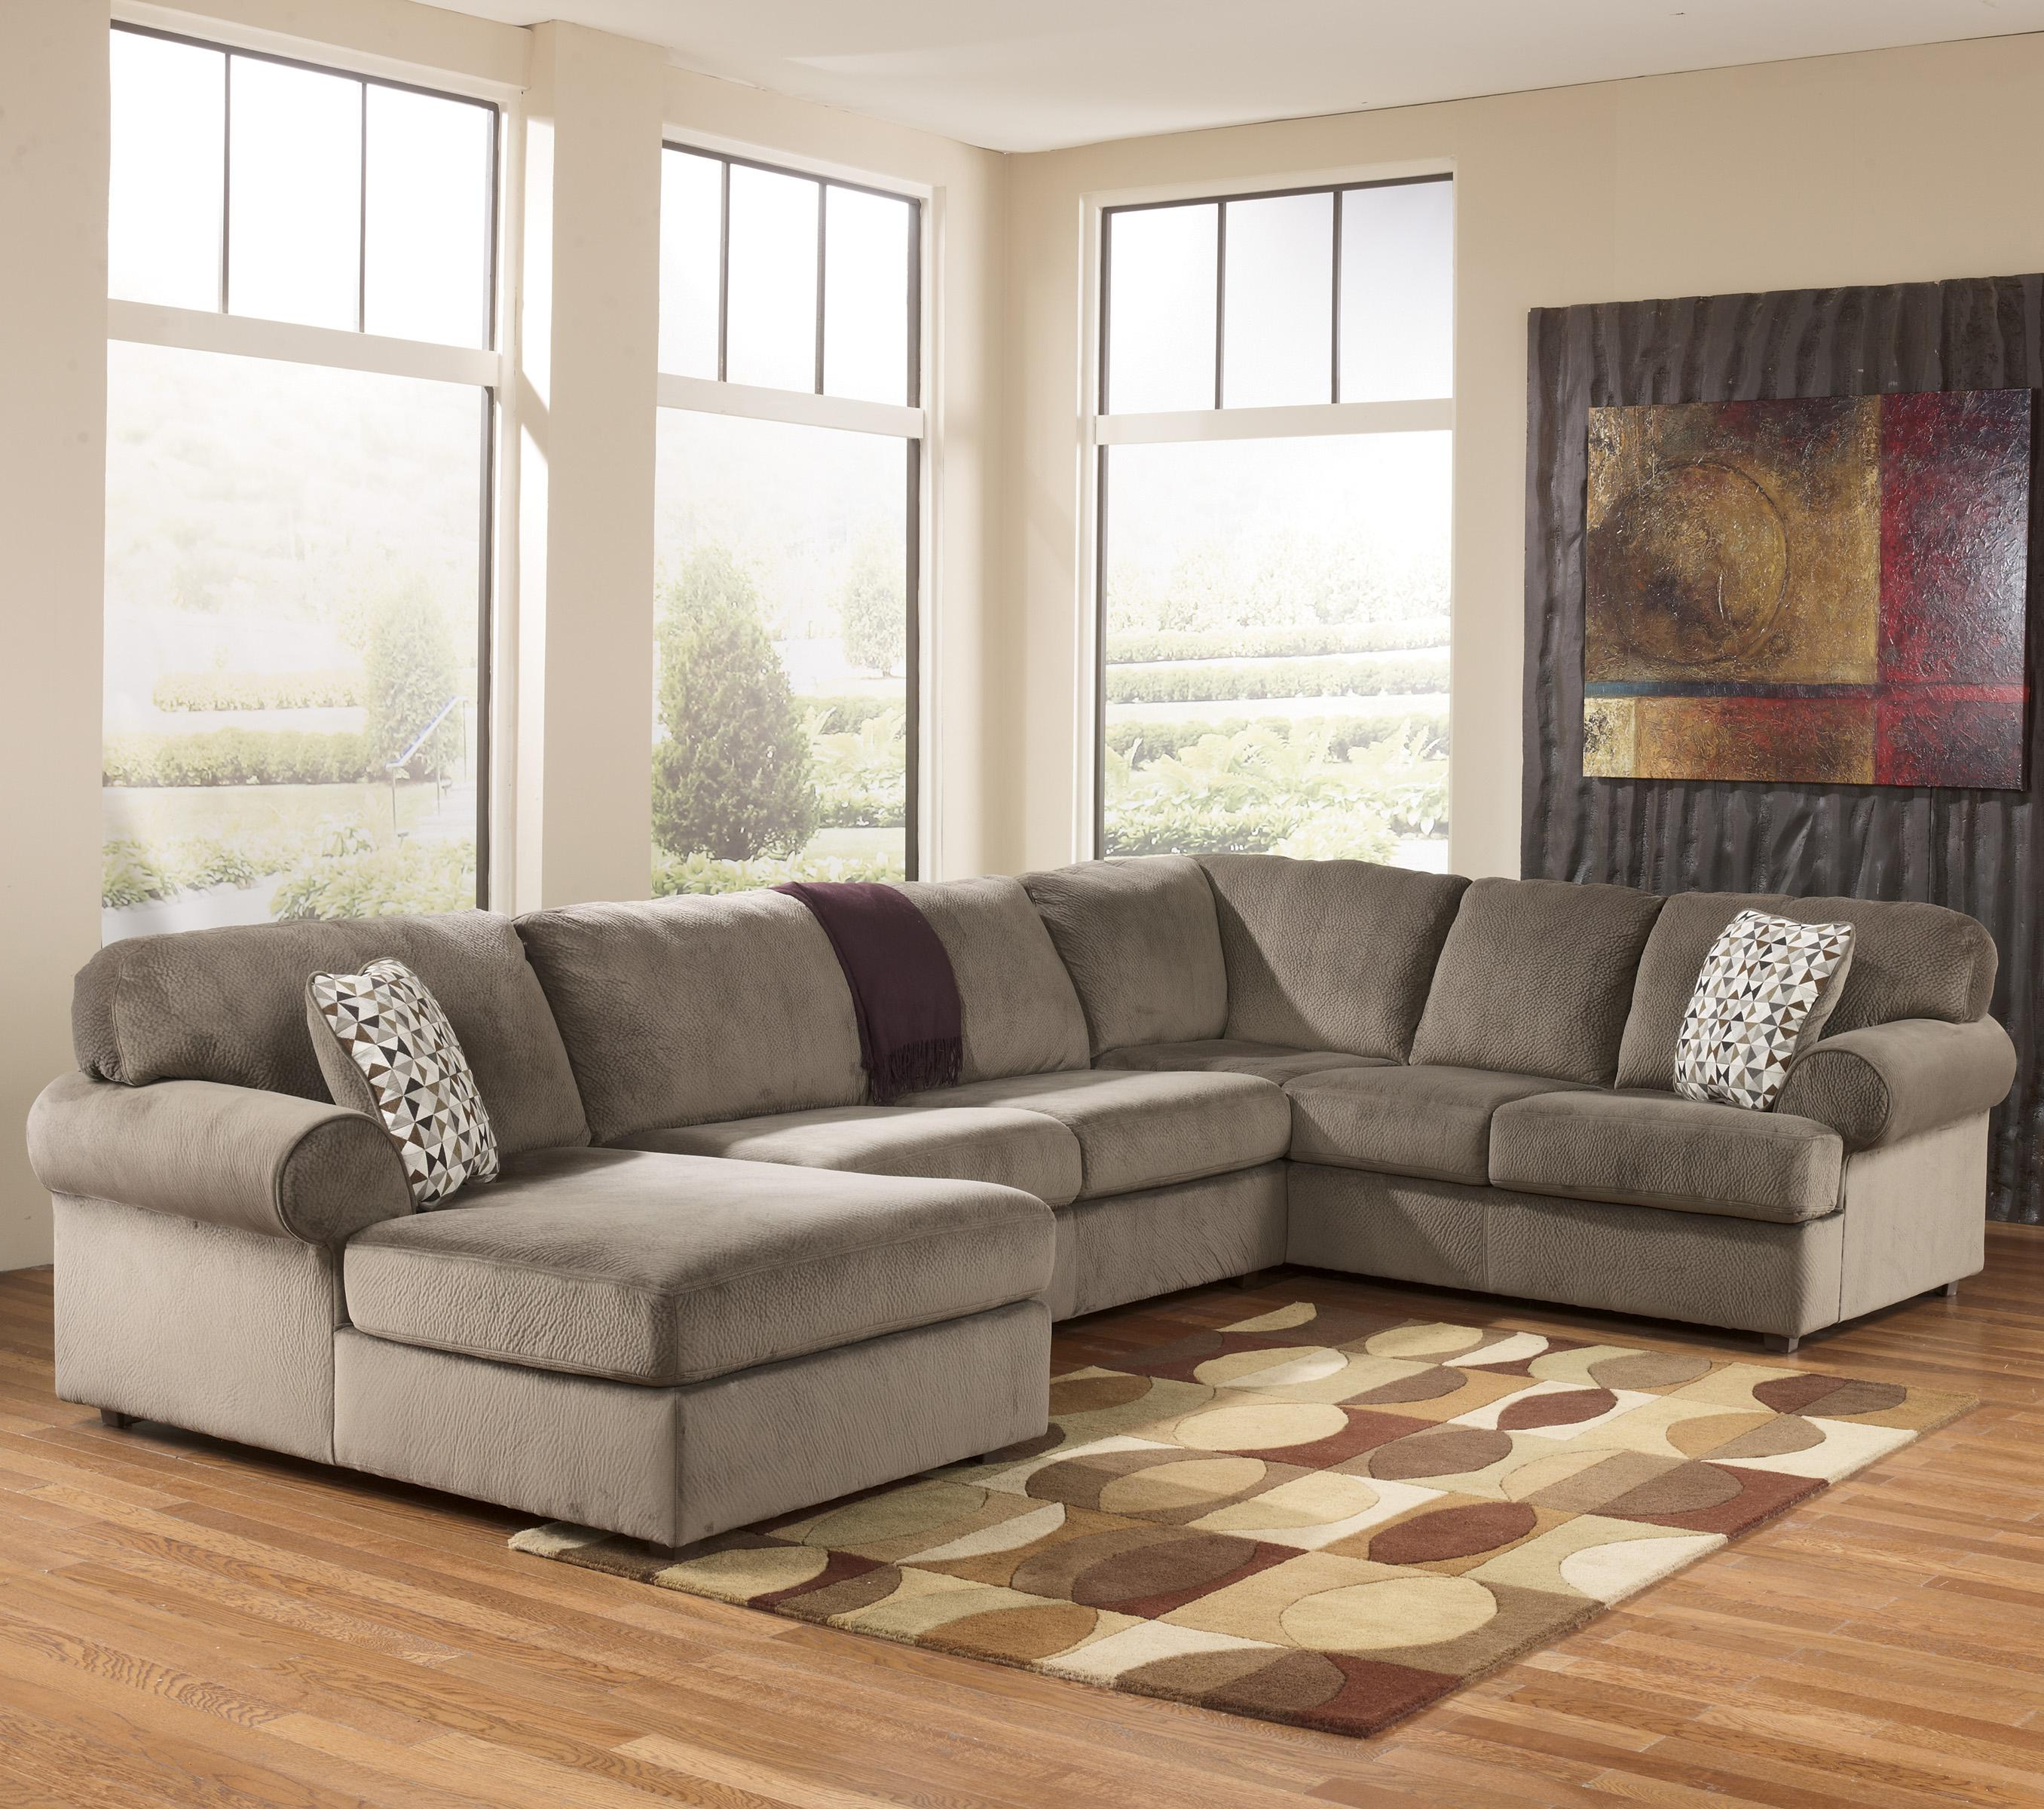 Baci Living Room Within Malbry Point 3 Piece Sectionals With Laf Chaise (View 7 of 20)